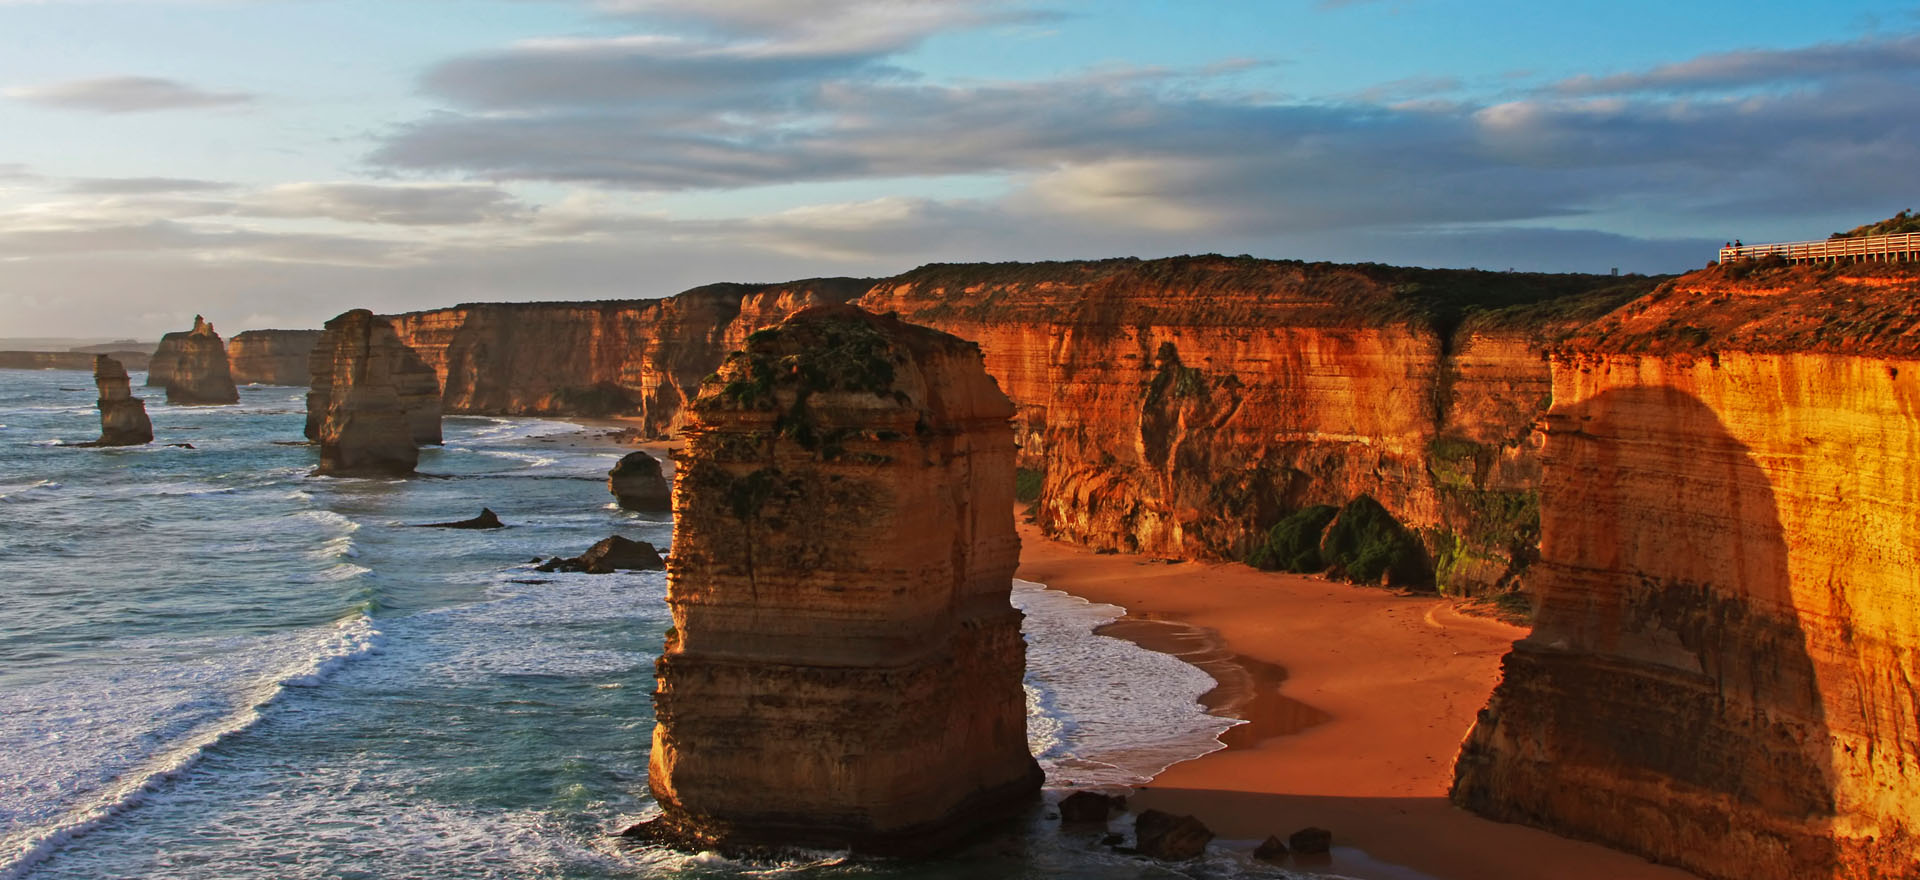 Twelve Apostles rock formations, Great Ocean Road